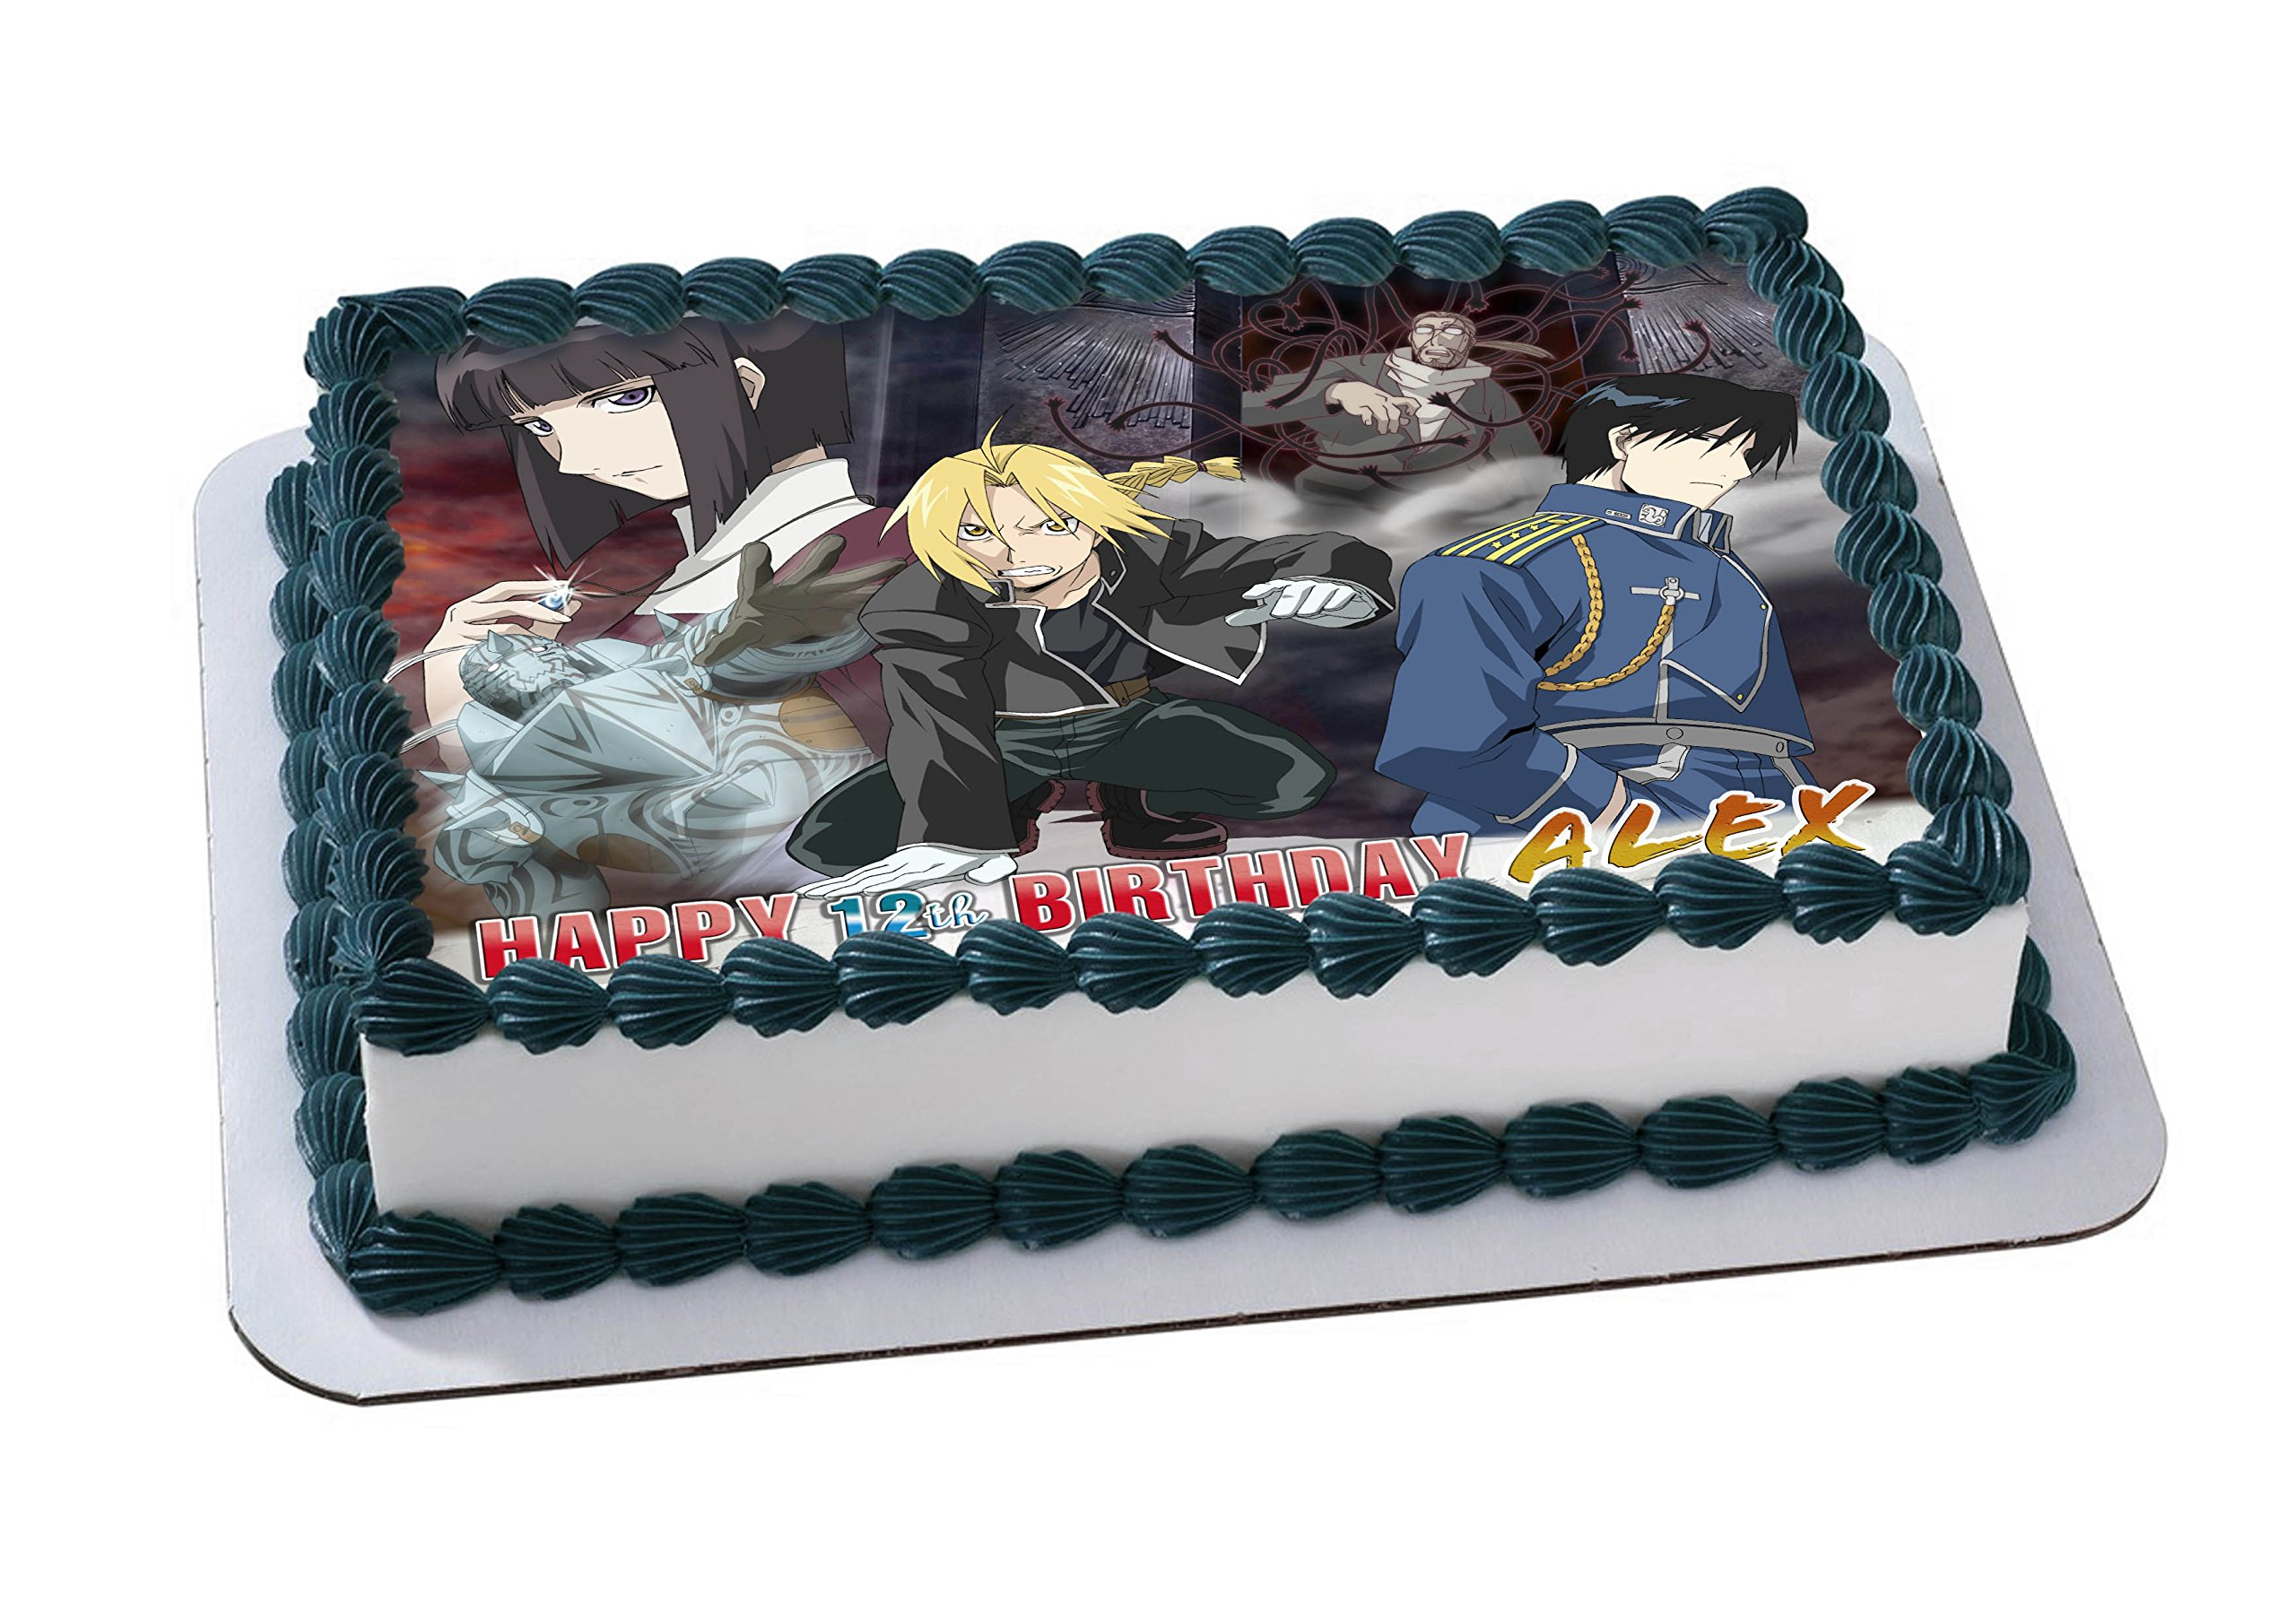 Fullmetal Alchemist Edible Image Cake Topper Personalized Icing Sugar Paper A4 Sheet Edible Frosting Photo Cake 1/4 ~ Best Quality Edible Image for cake by EdibleInkArt (Image #2)